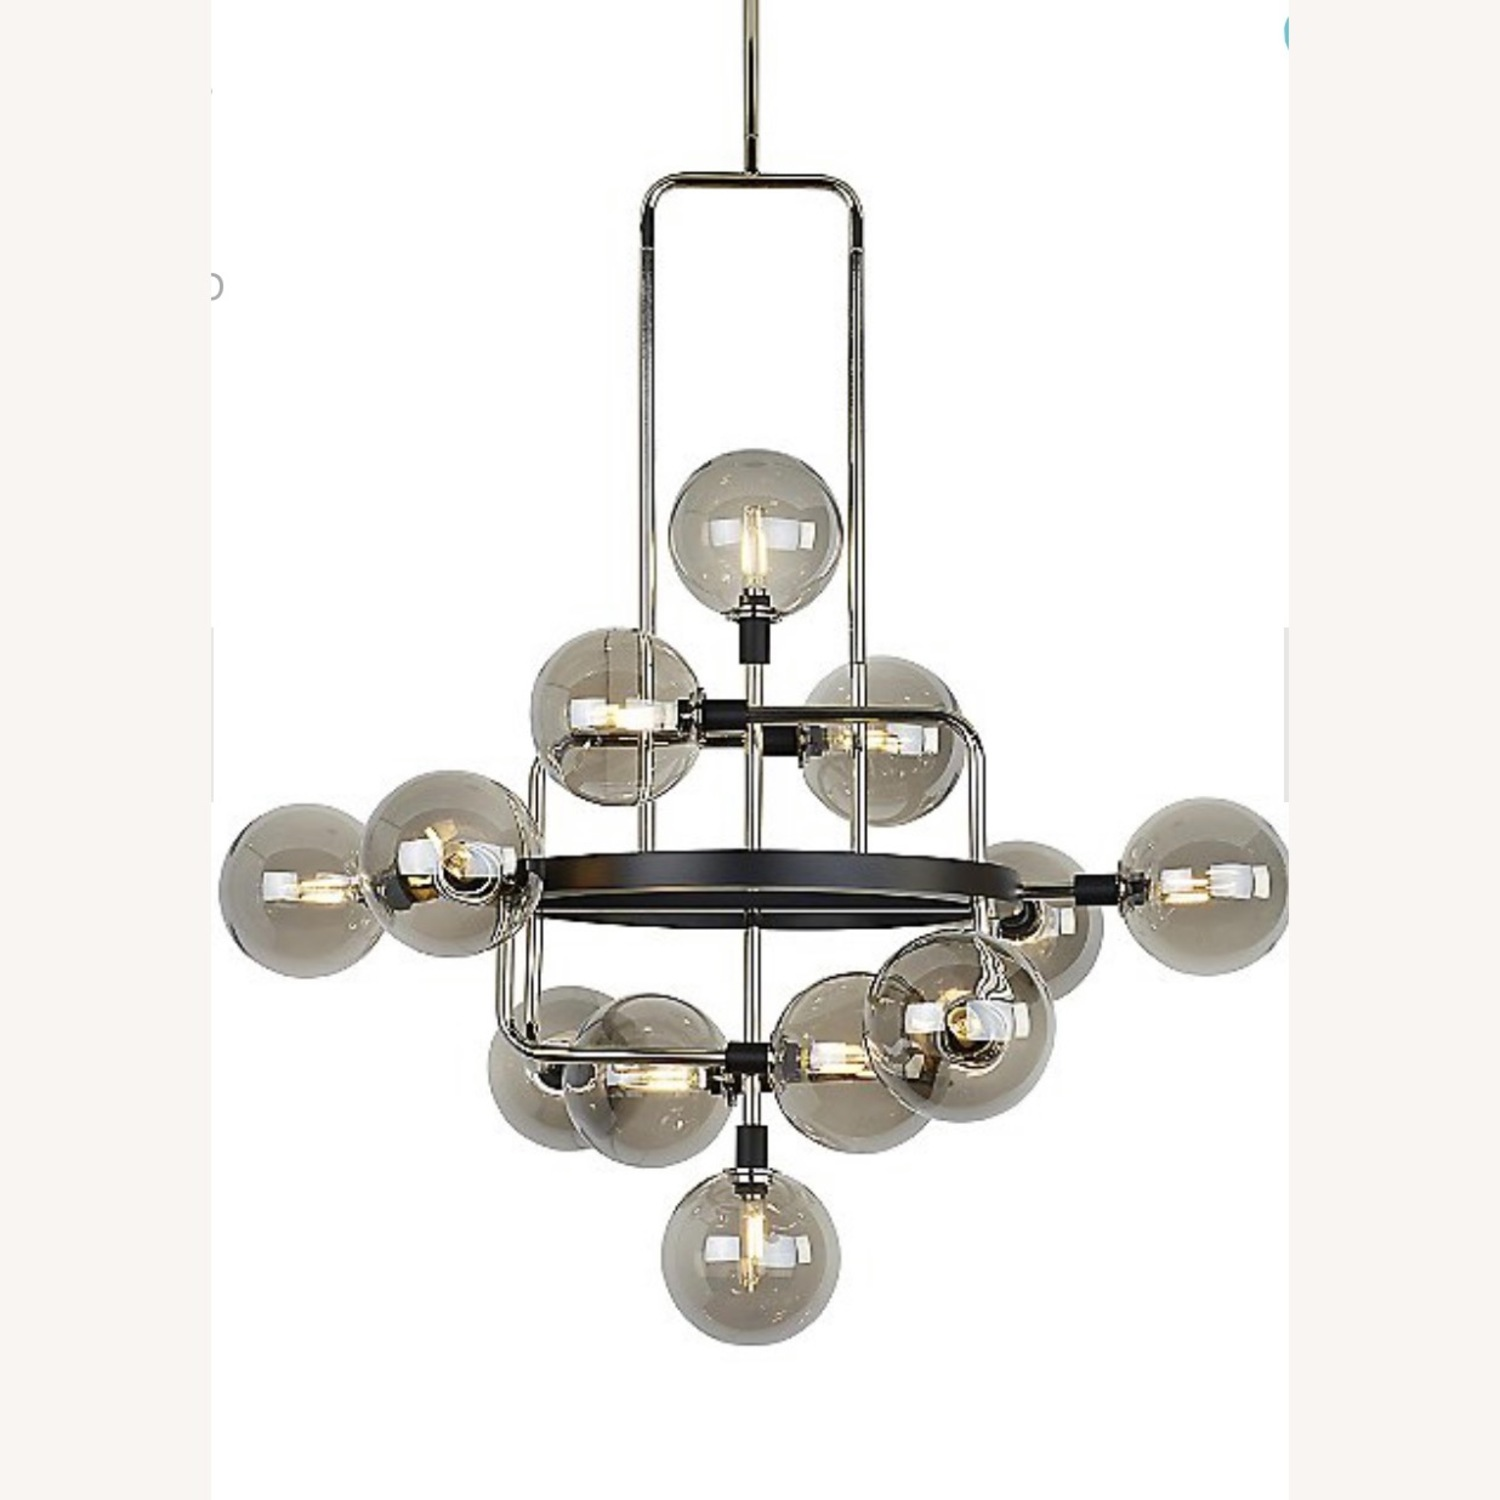 The Viaggio Chandelier - image-1